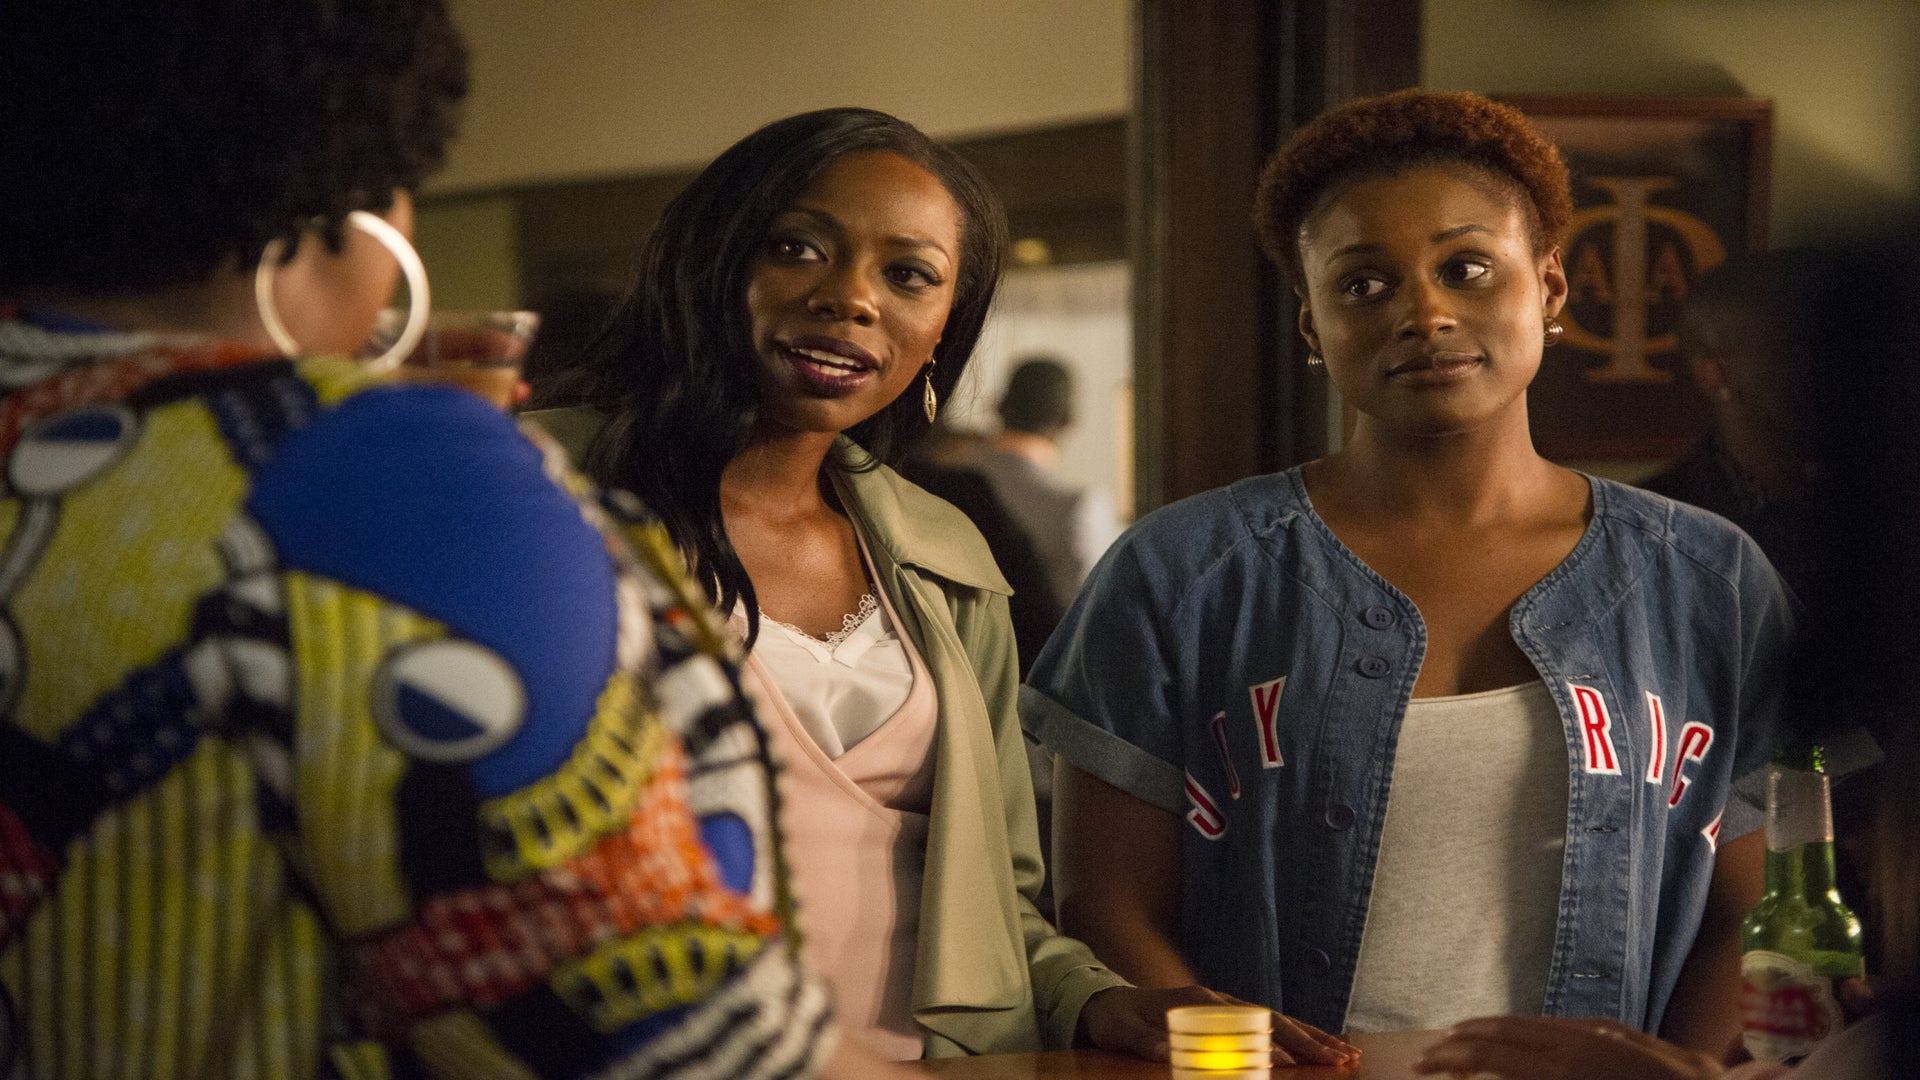 Actress Yvonne Orji On Her Ever-Changing Hair and Why 'Insecure' Is The Prequel To Black Girl Magic